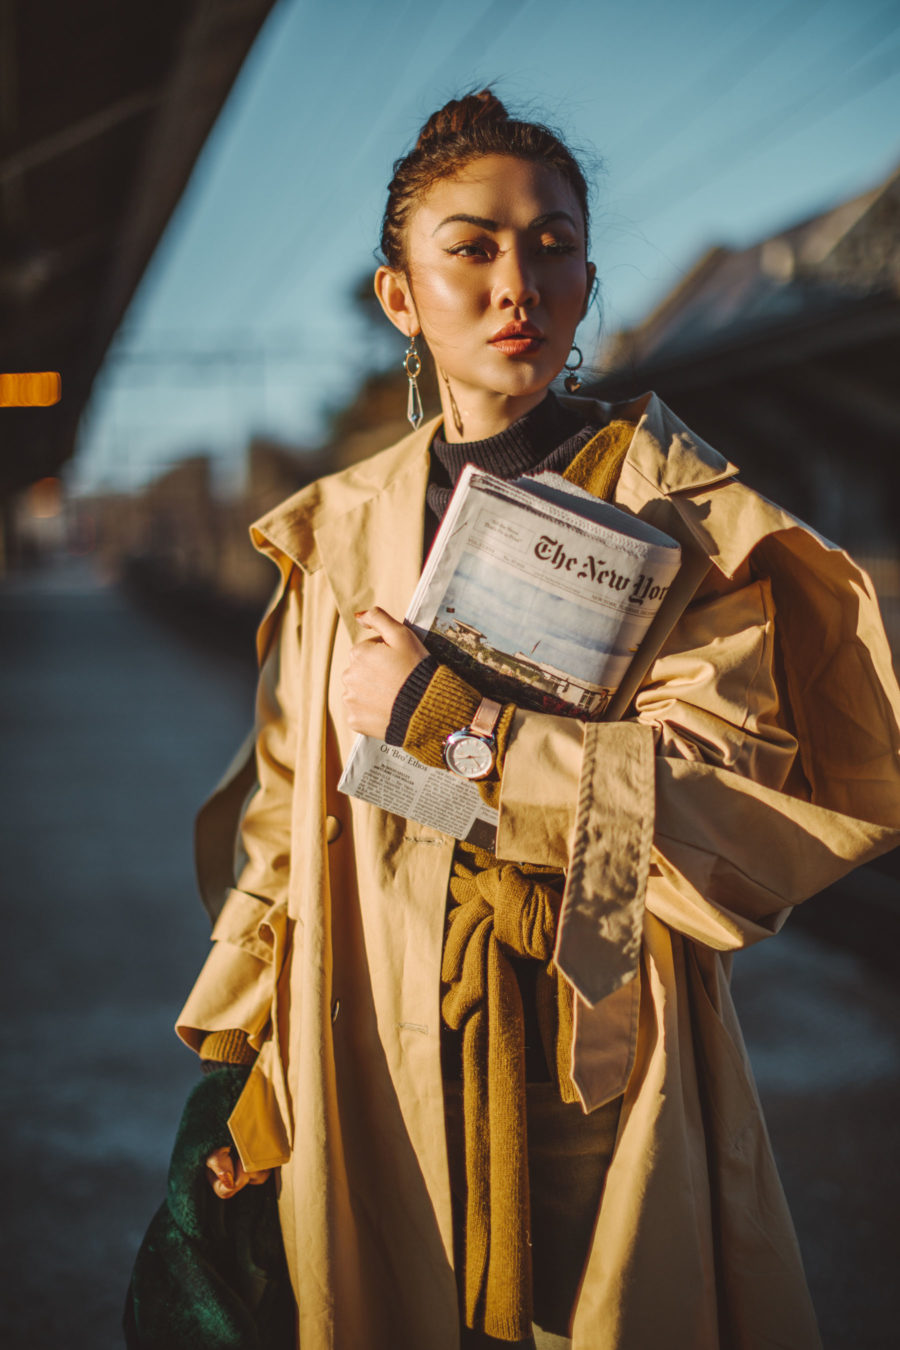 biggest blogging trends of 2019, Cozy Layered looks, jessica wang, fashion blogger, new york fashion blogger, street style fashion, ootd, asian blogger, oversized trench coat, leather band watch, layered style // Notjessfashion.com